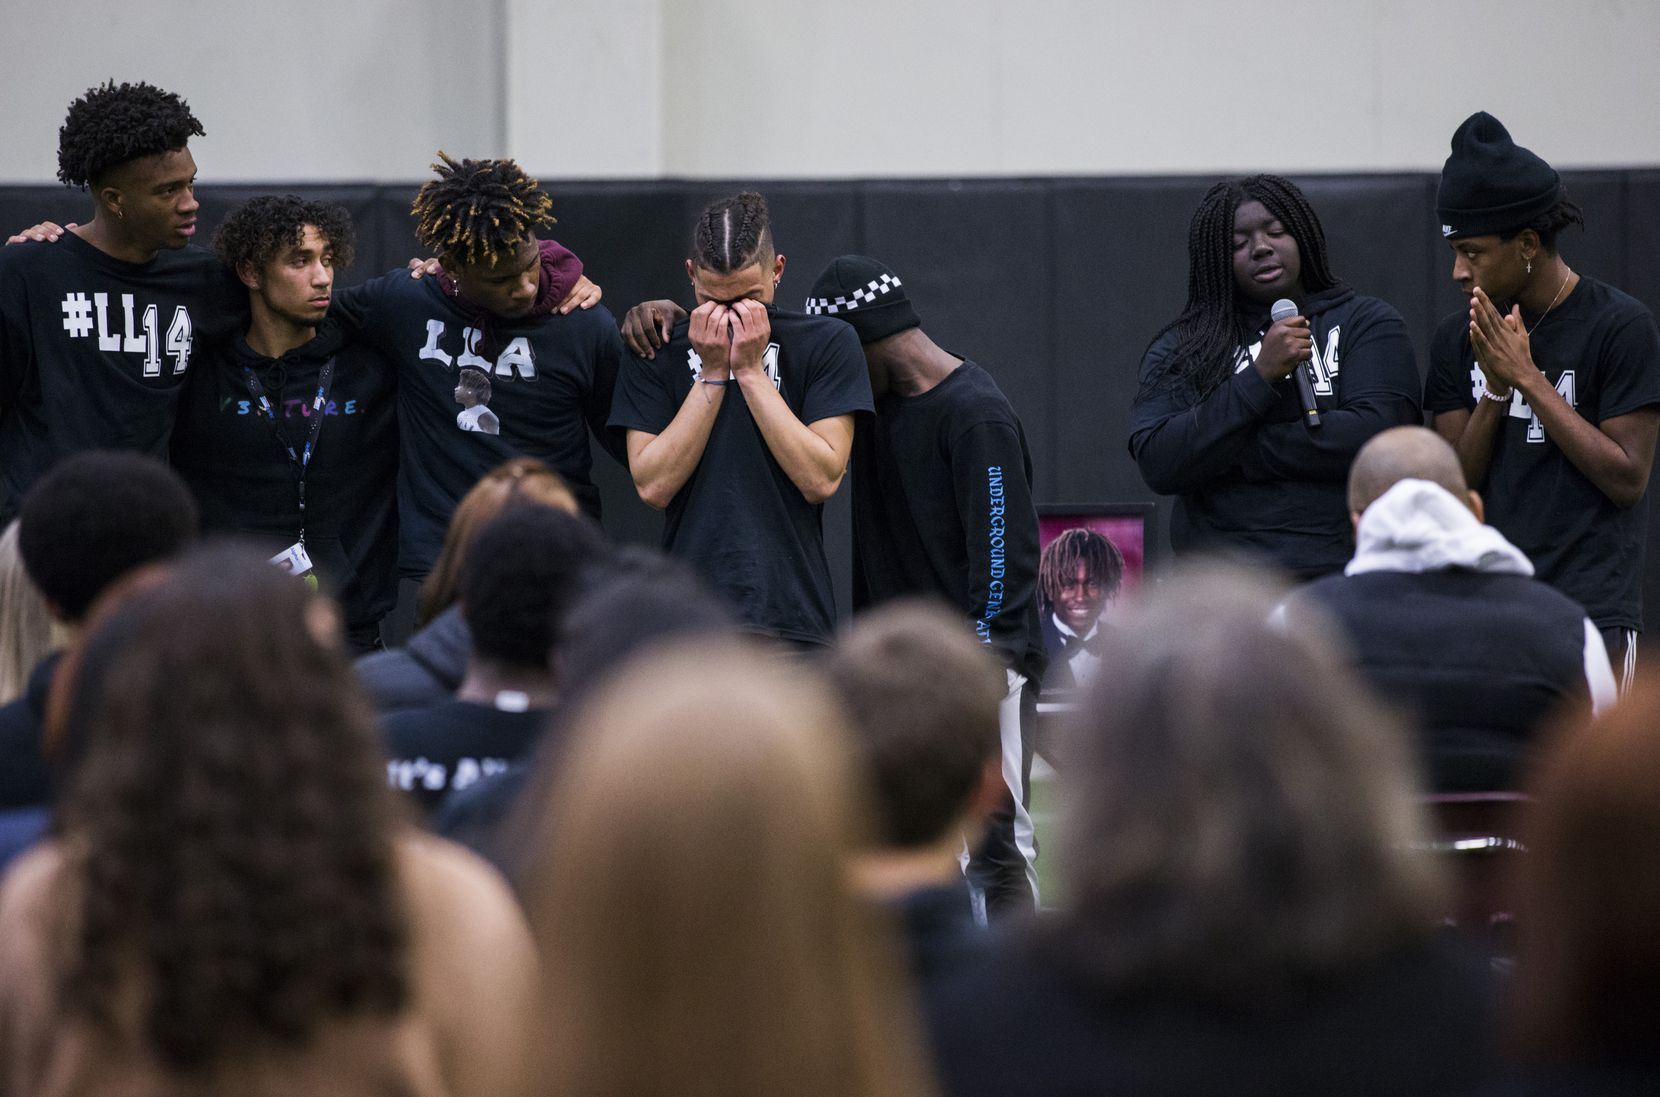 Student athletes speak during a vigil for Wylie High School student Azaan Abdellatif on Thursday, January 30, 2020 at Wylie High School in Wylie, Texas. Abdellatif was found dead at his home on Wednesday morning.